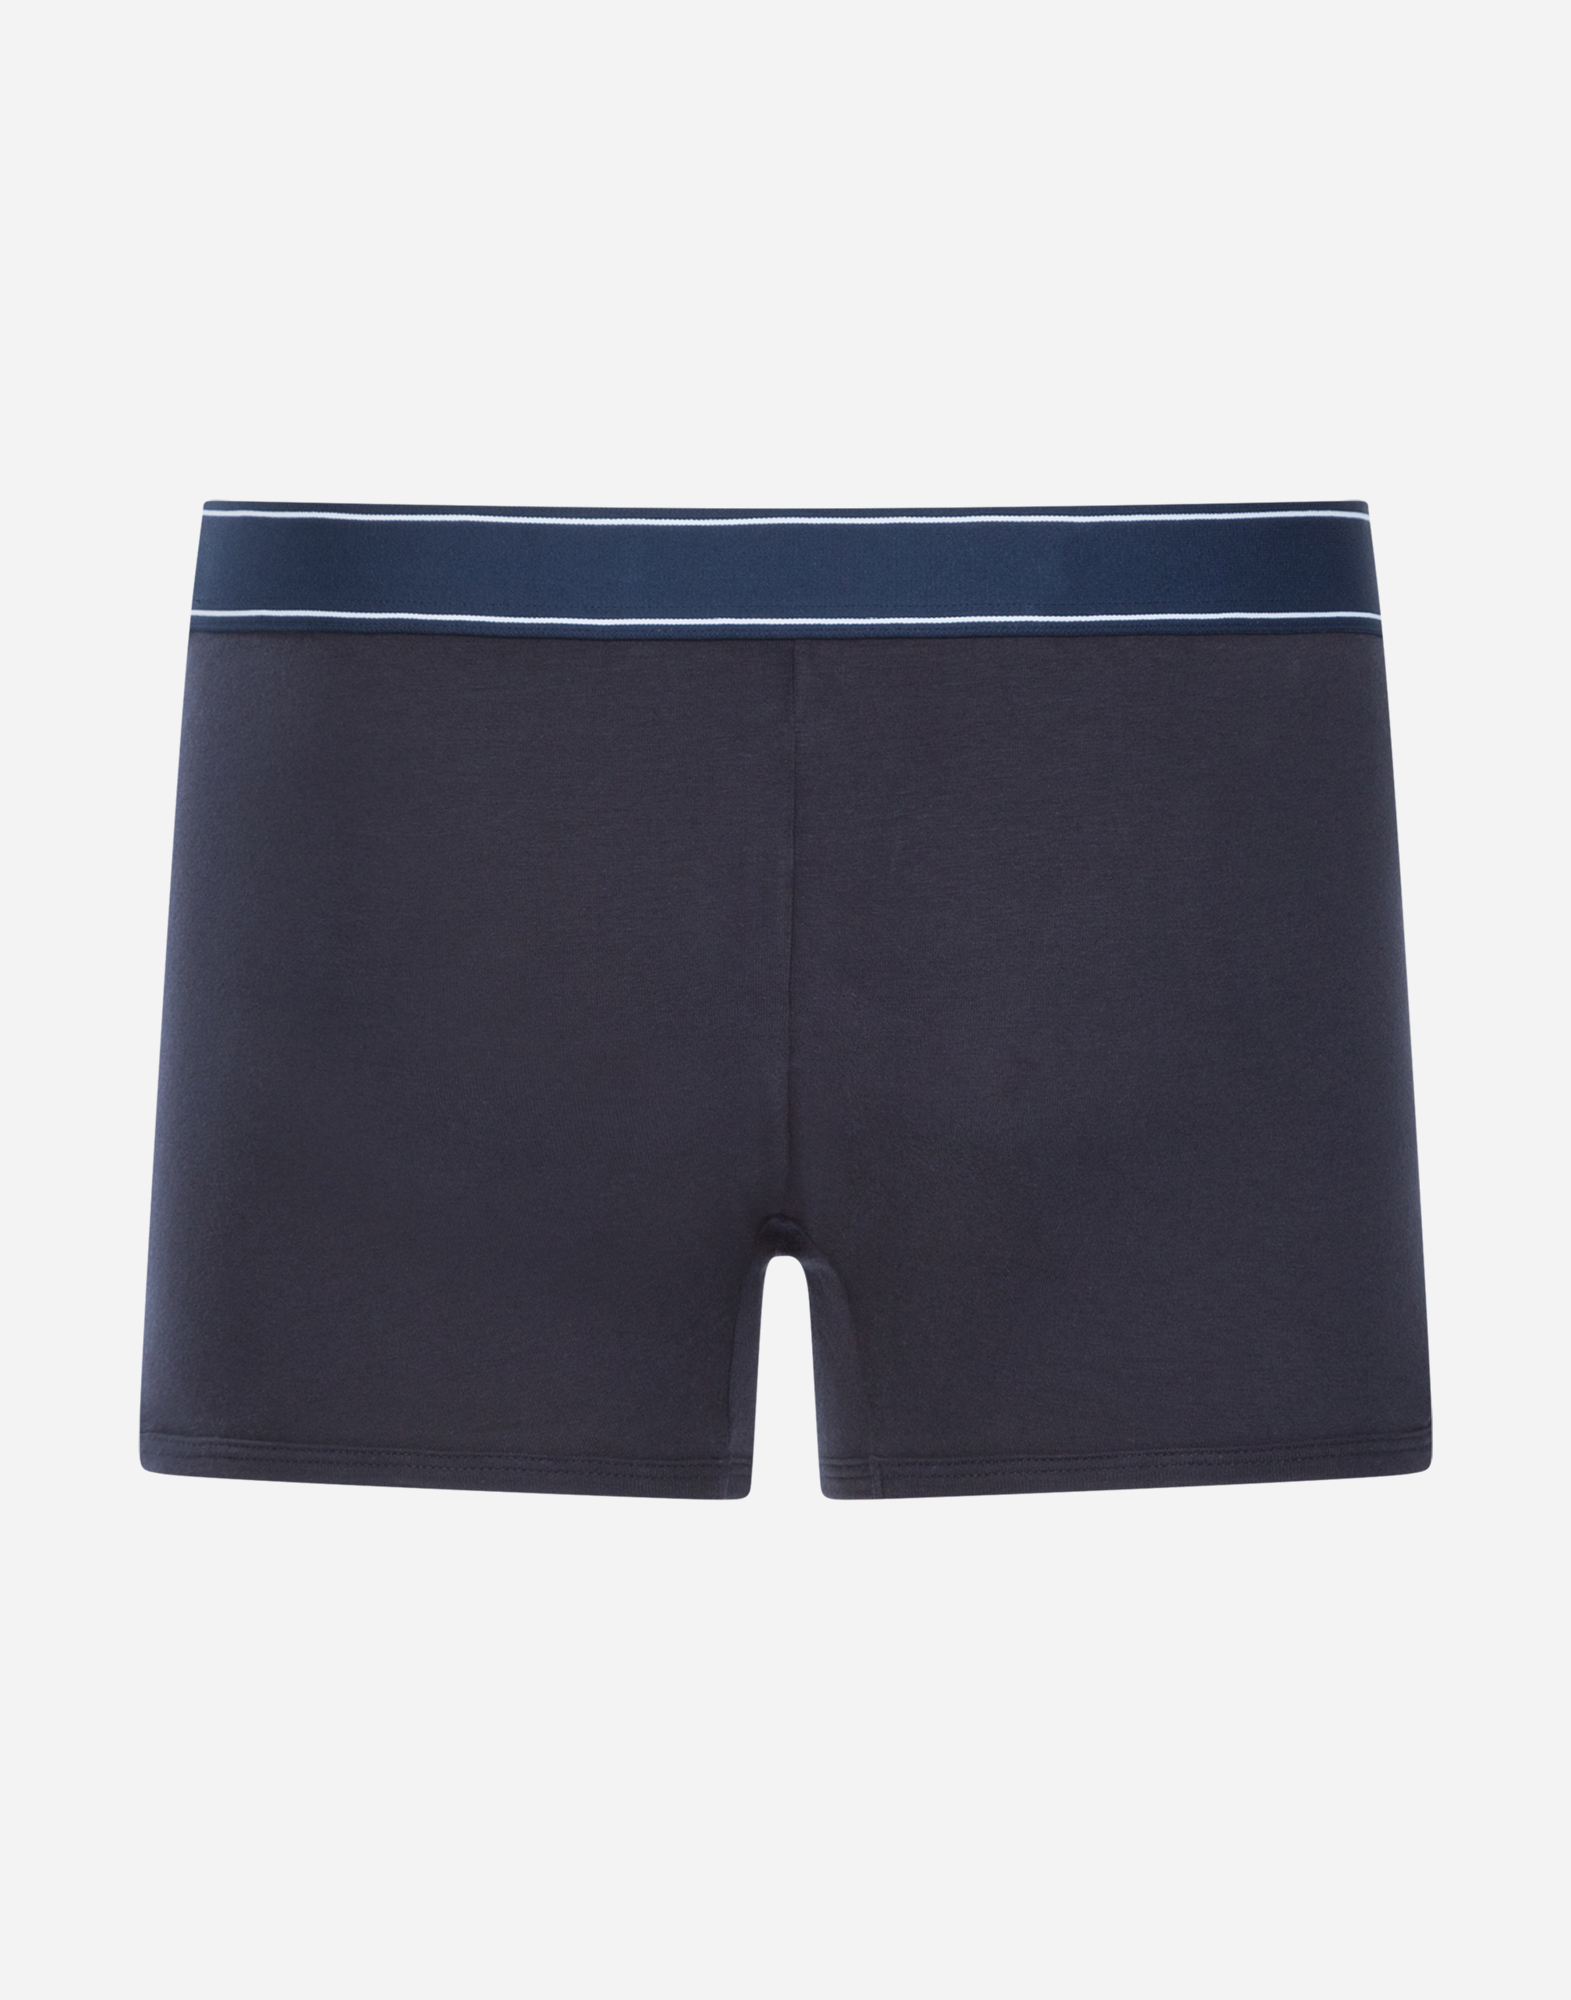 Dolce & Gabbana BOXER UNDERWEAR IN STRETCH COTTON